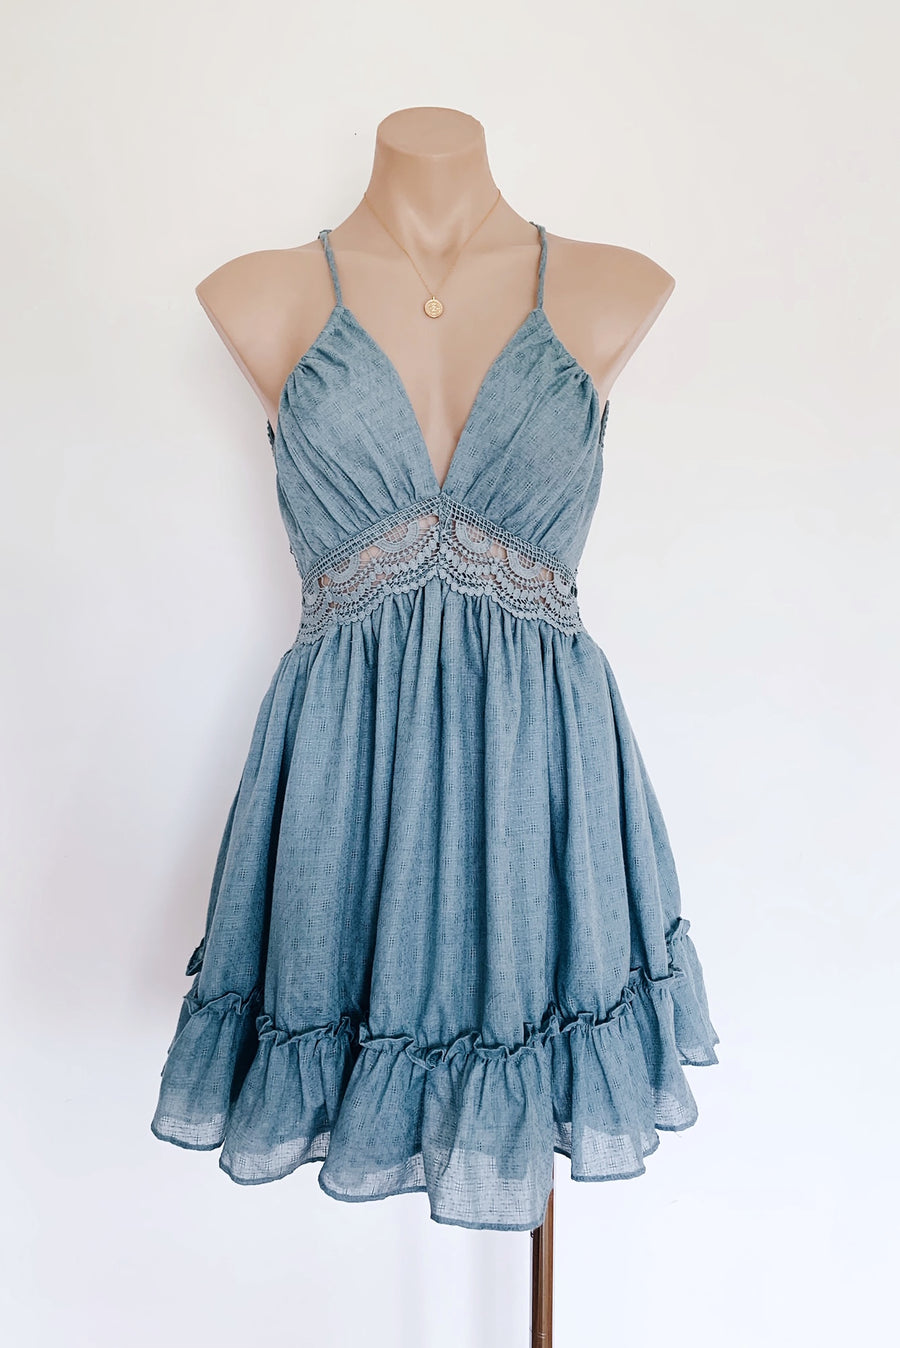 Bianca Dress in Sage for $75.00